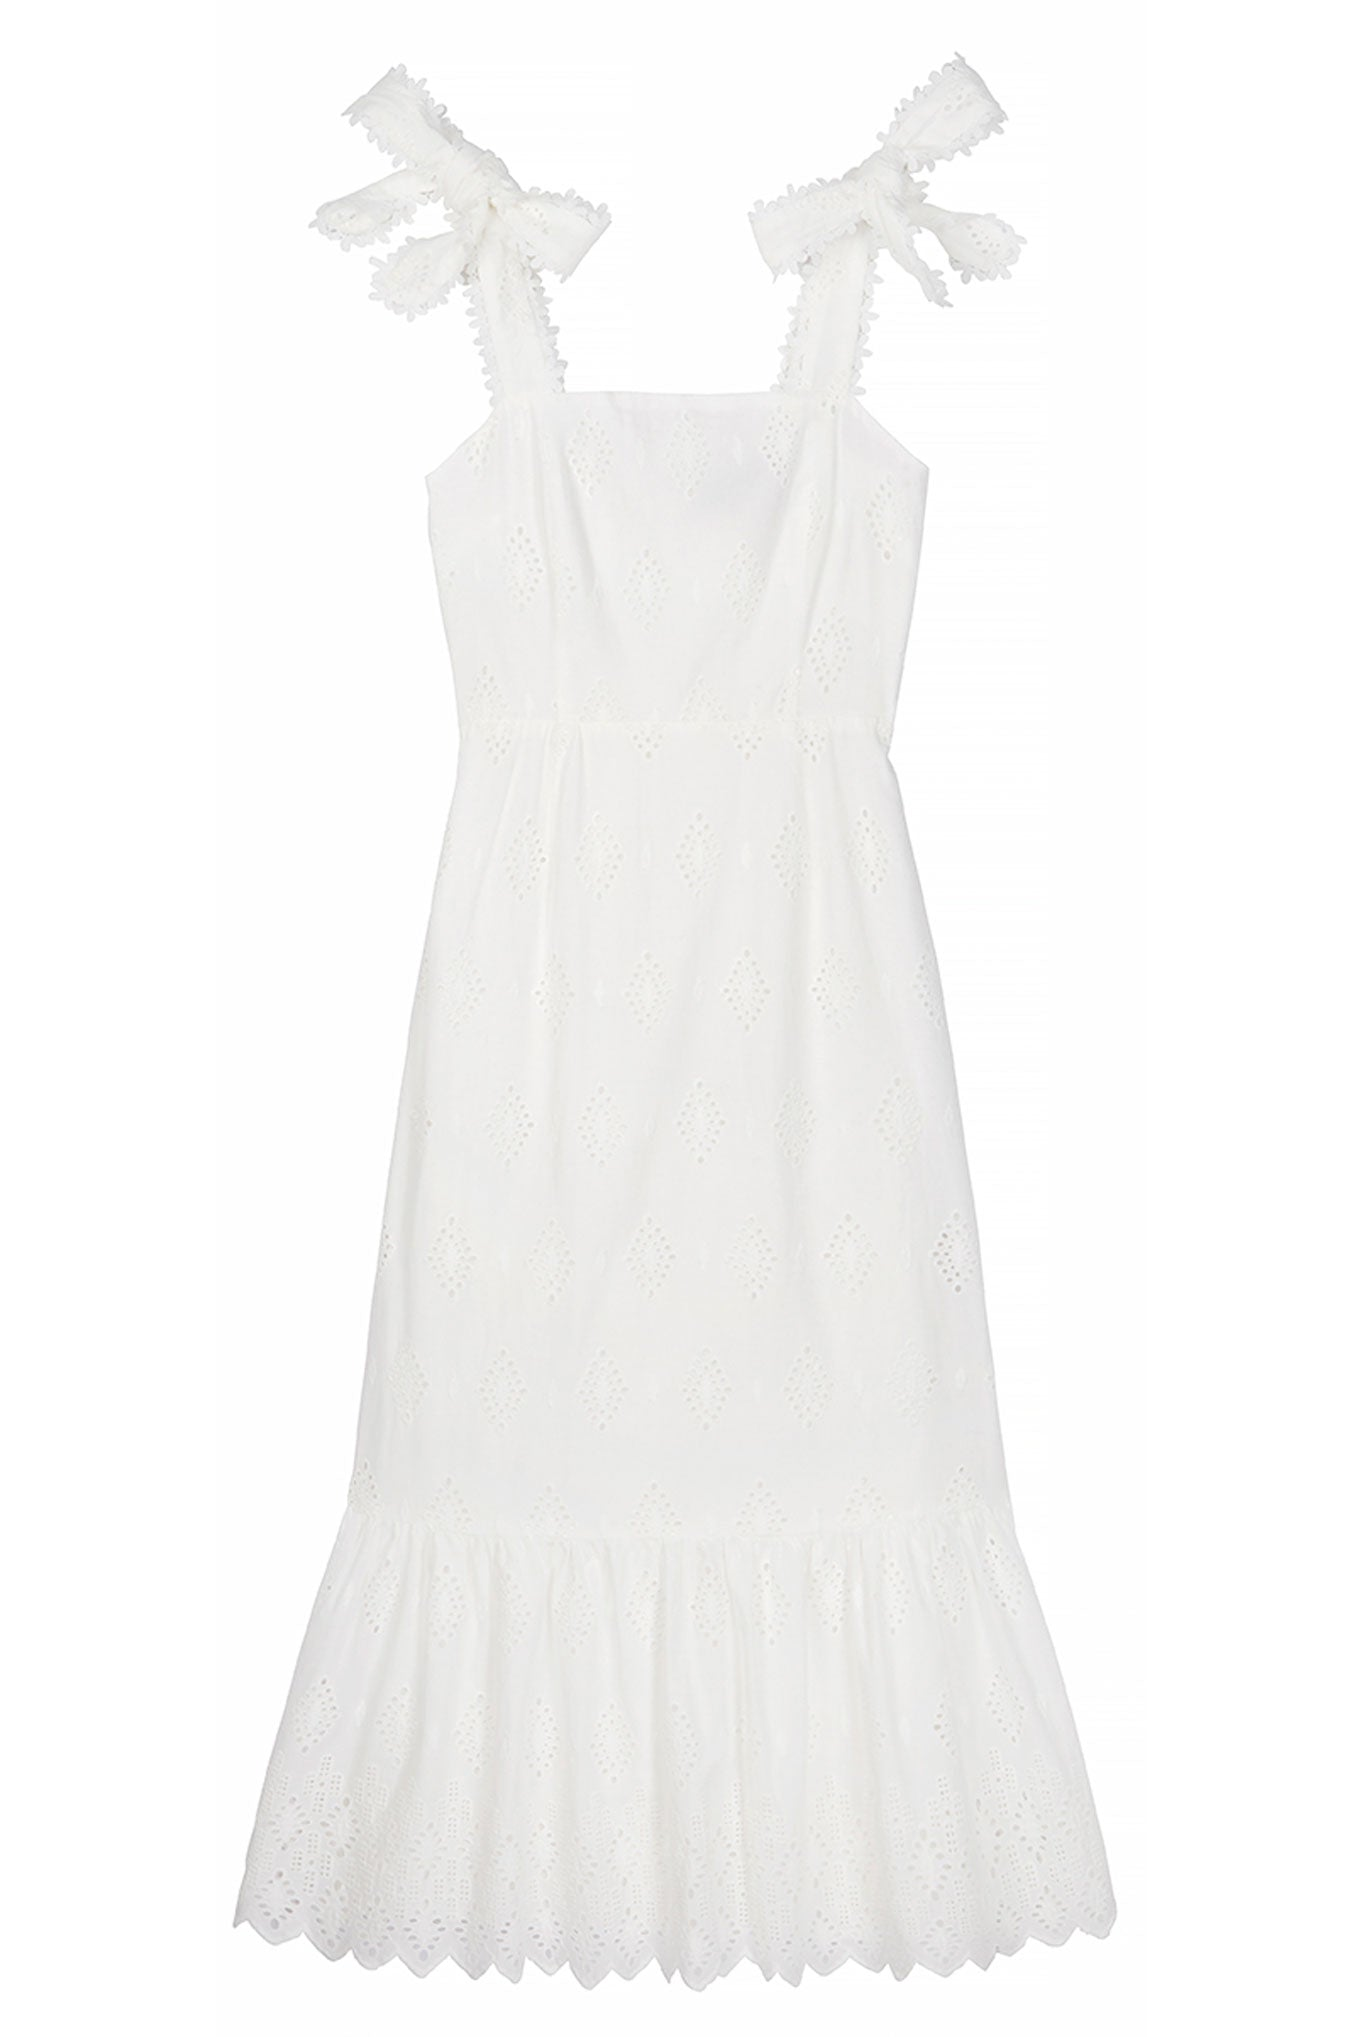 BEATRICE BRODERIE DRESS - White